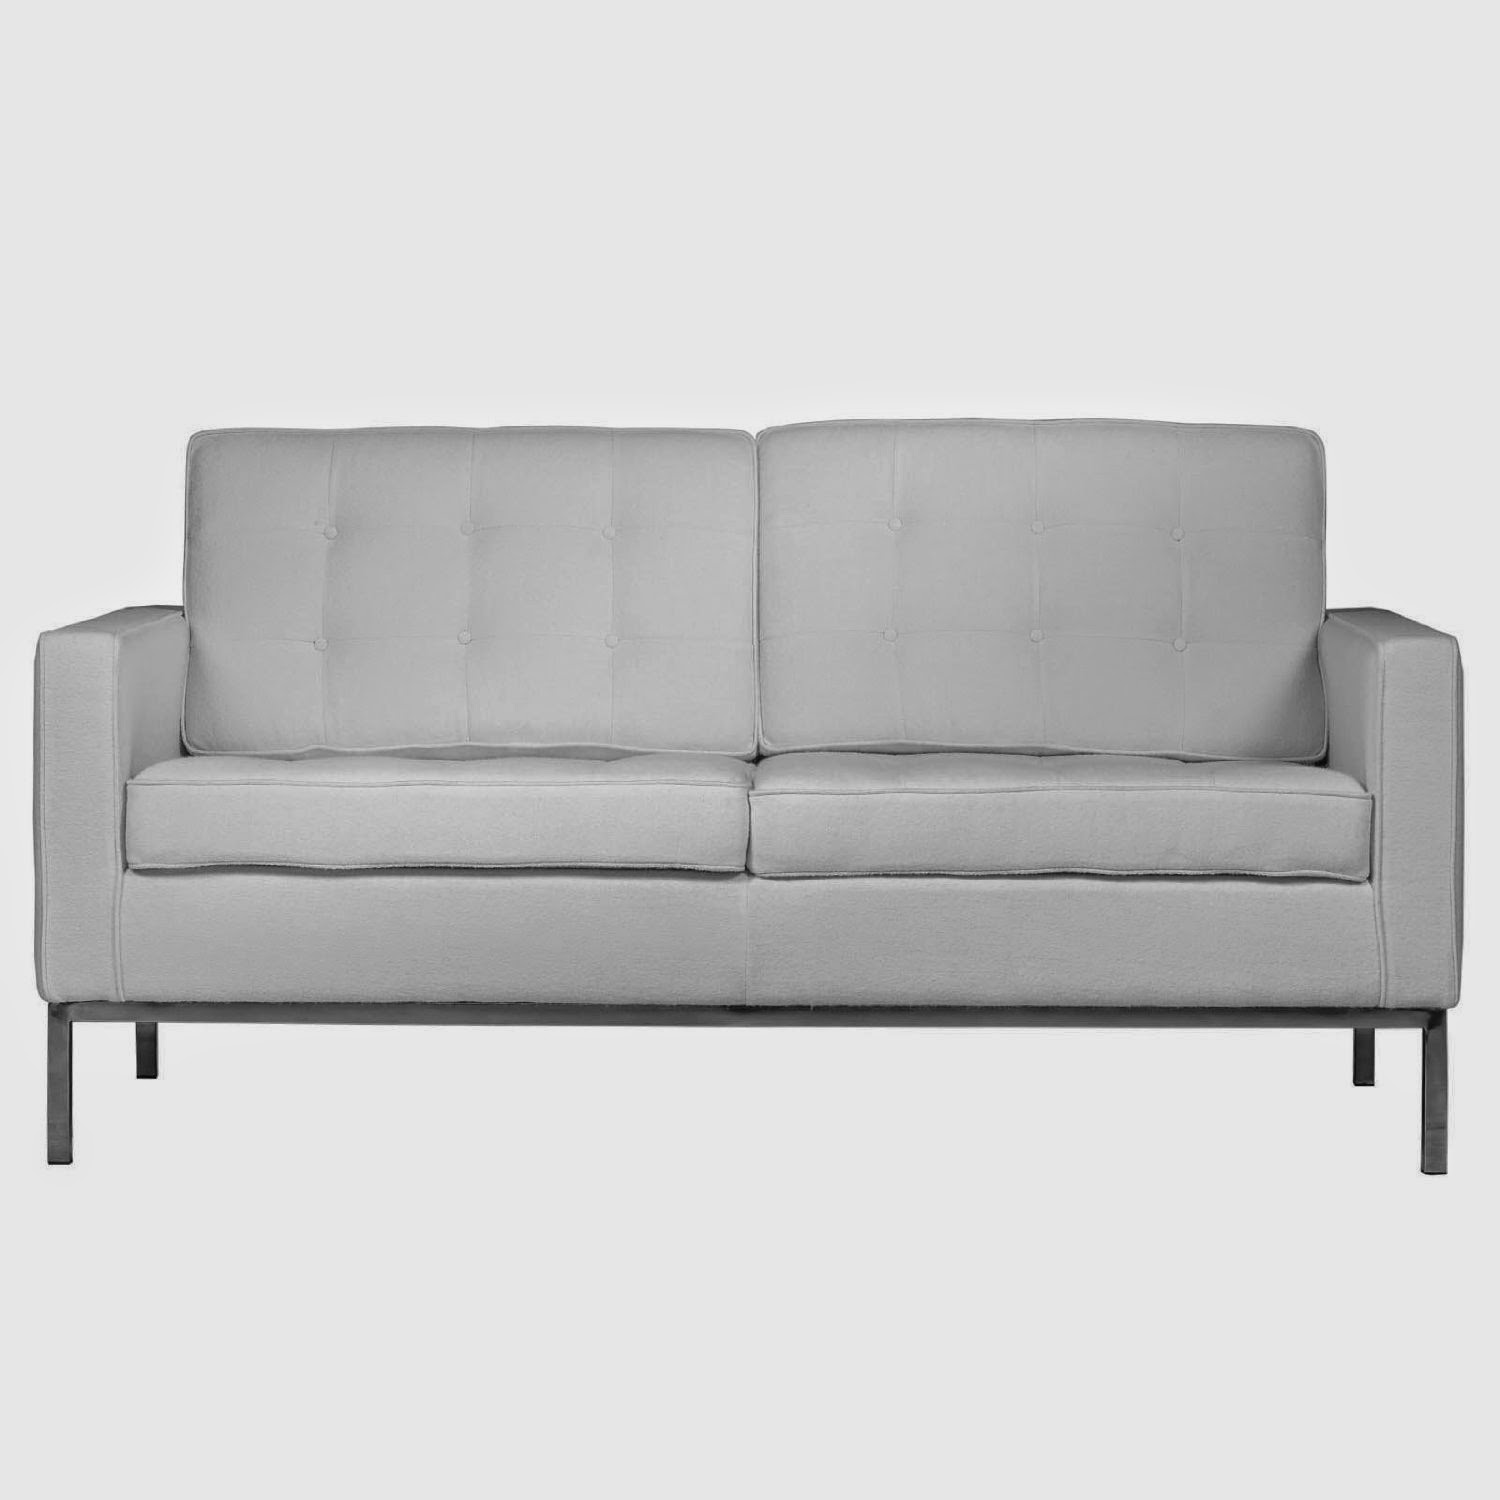 Chesterfield Sofa White Chesterfield Sofa